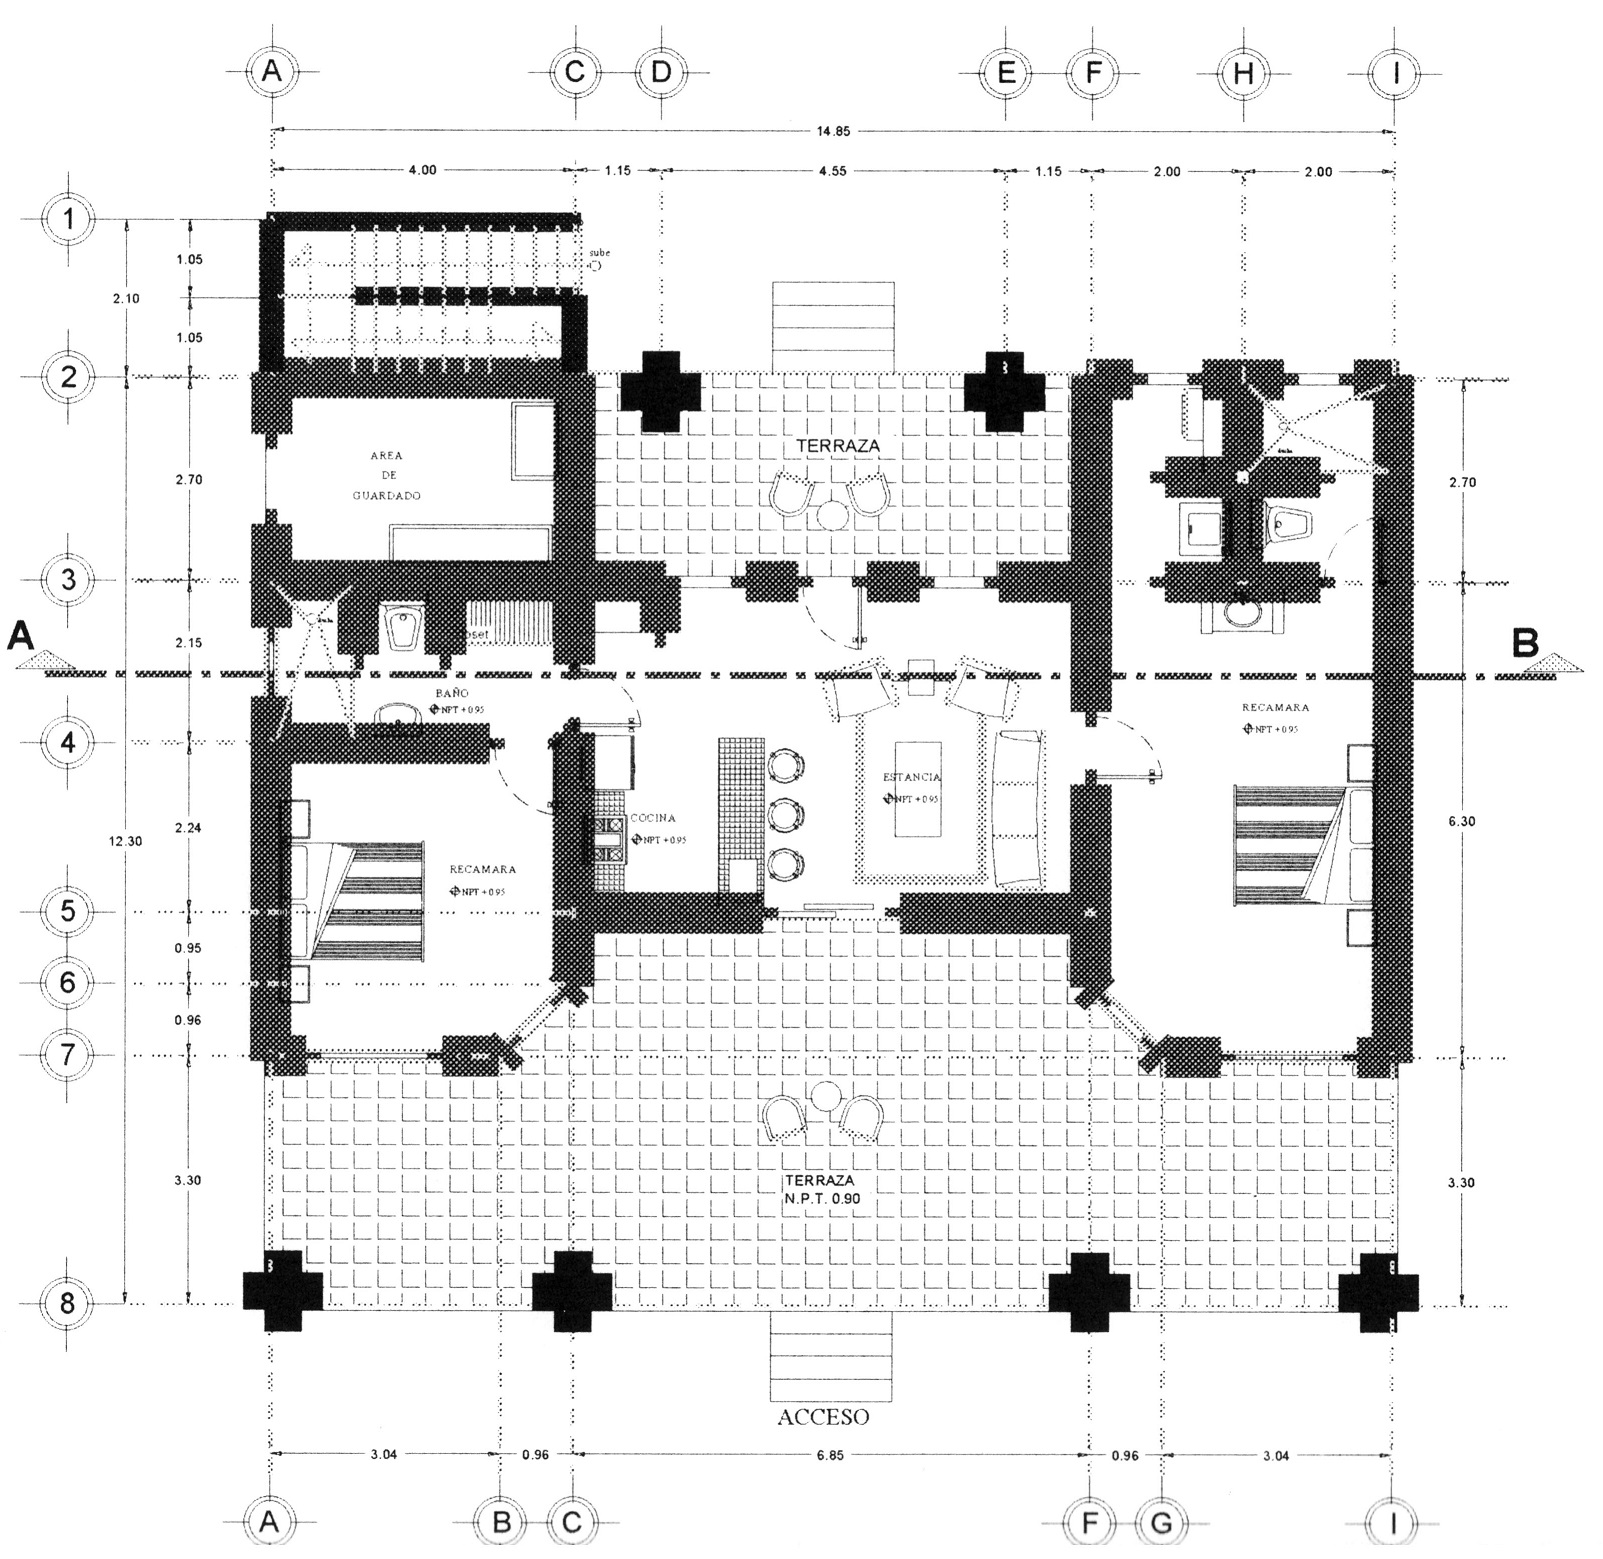 https://casadelphi.com/wp-content/uploads/2019/12/FloorPlan.jpeg